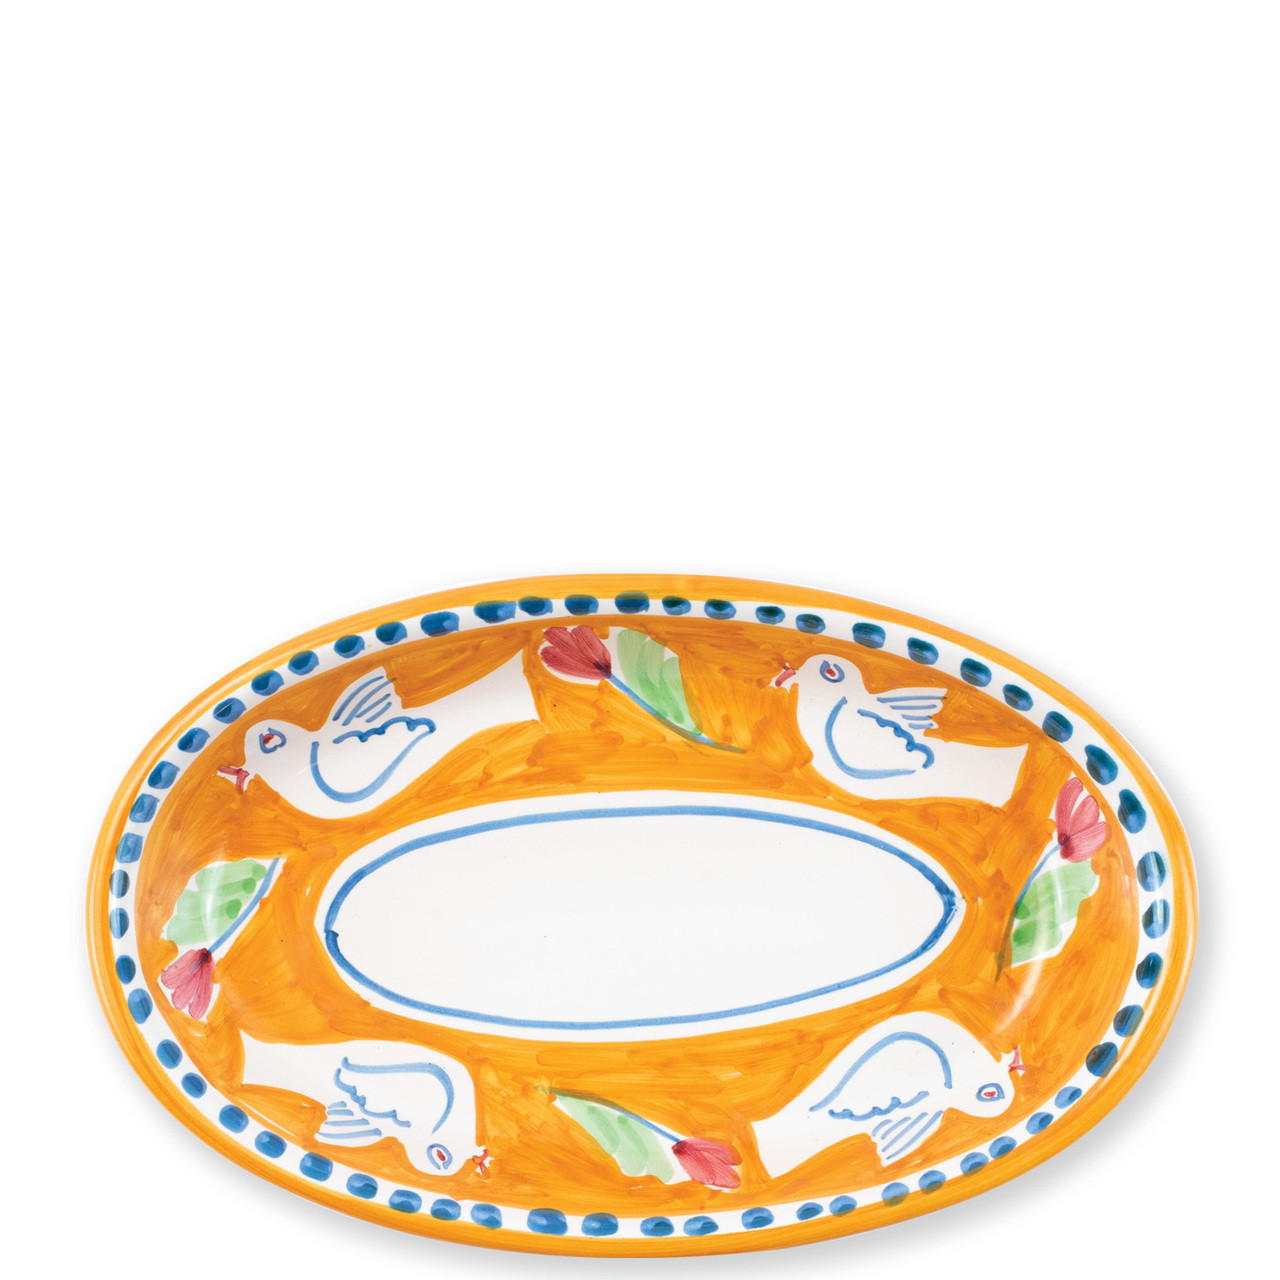 Vietri Campagna Uccello Small Oval Tray